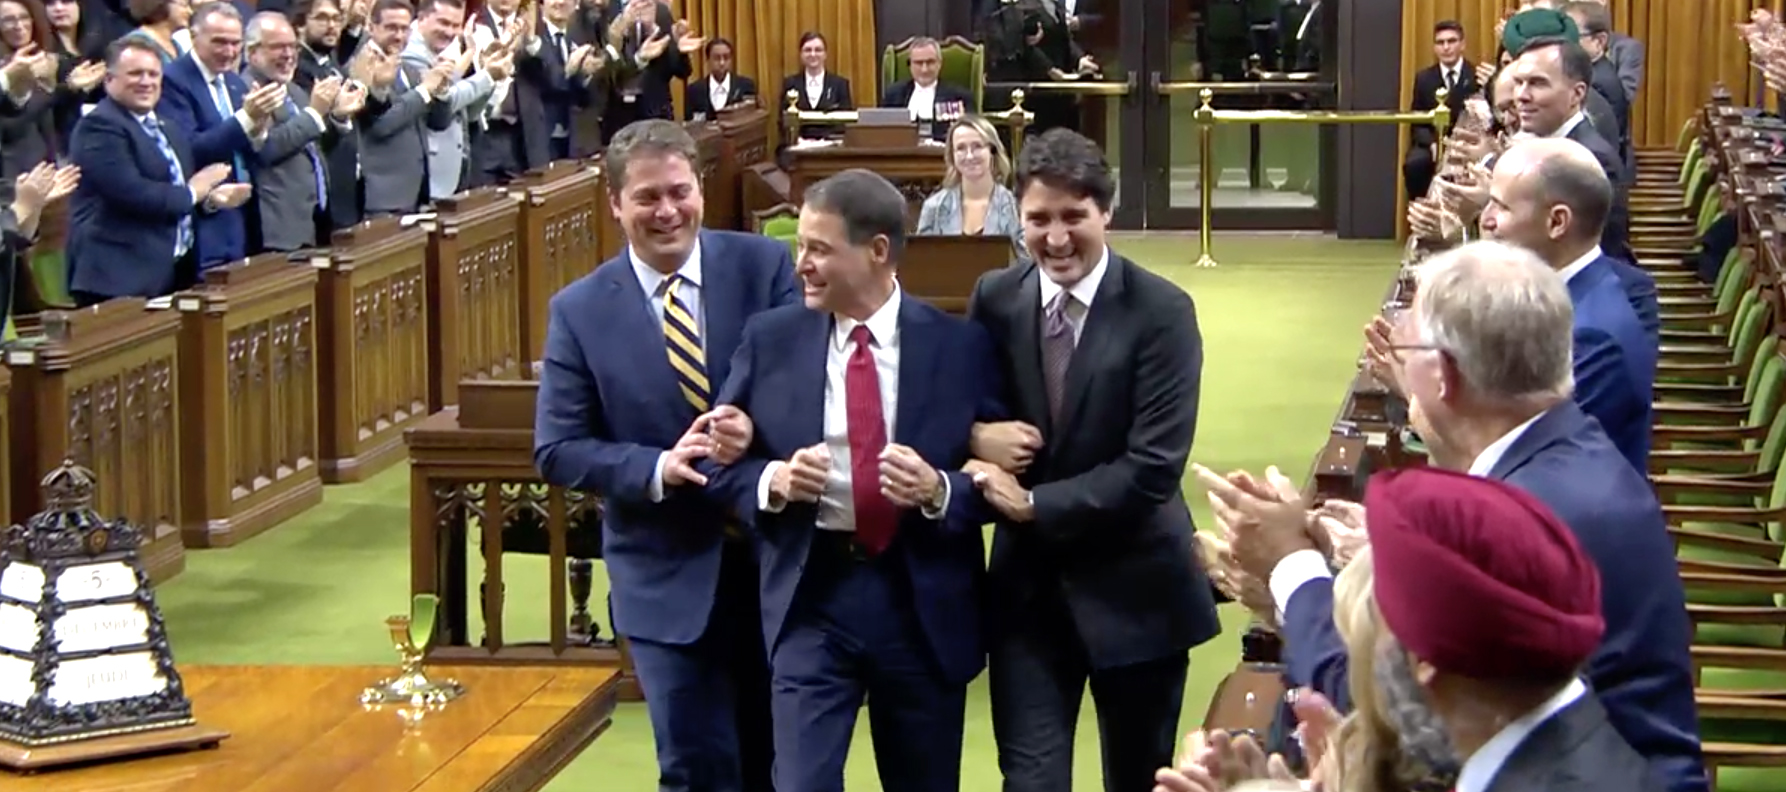 Northern Ontario MP Anthony Rota elected Speaker of the House